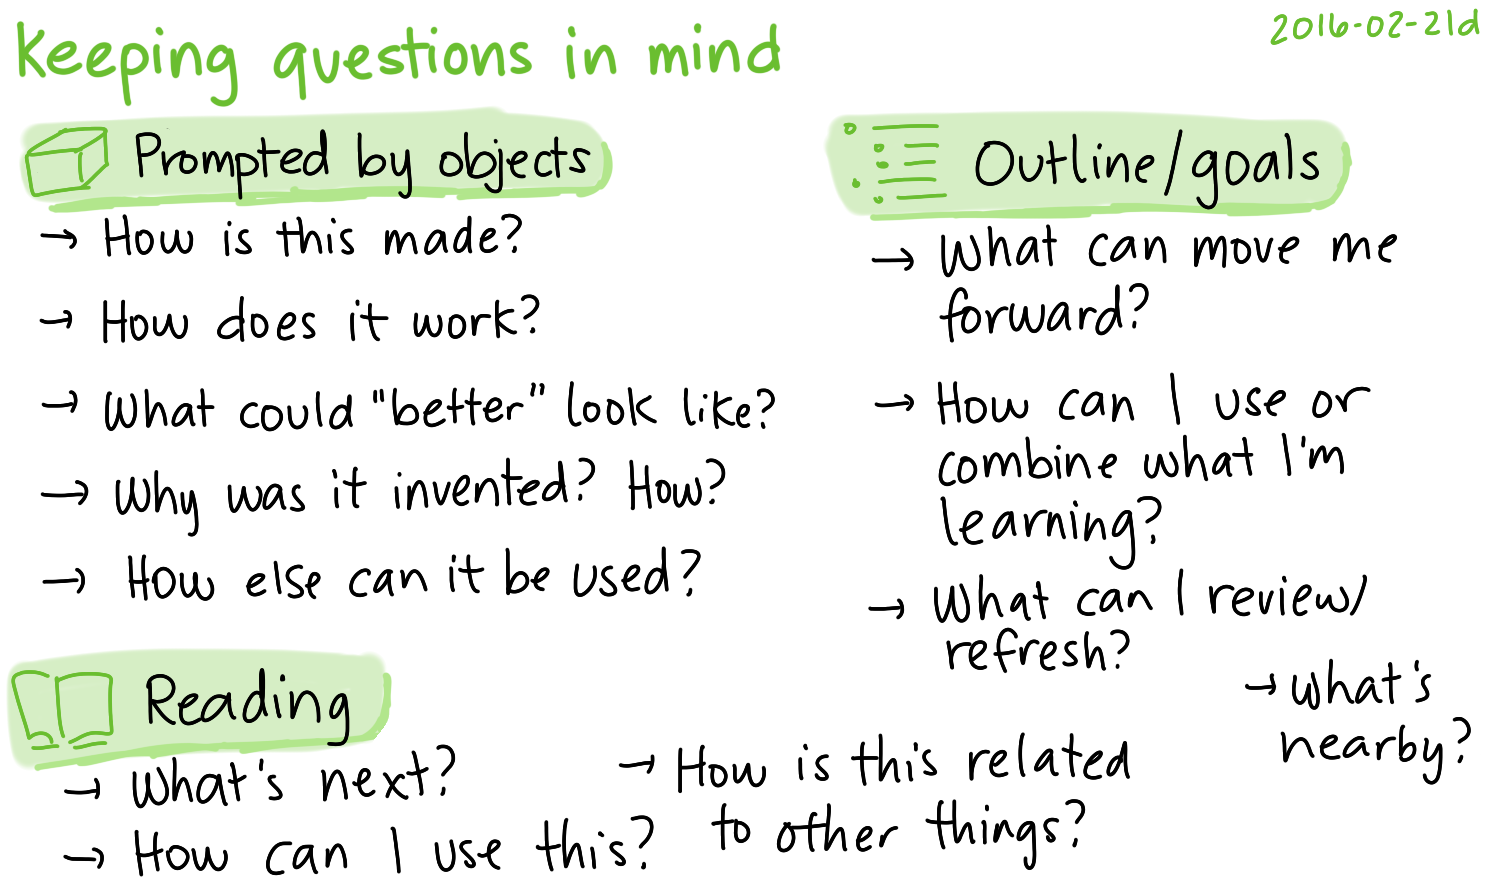 2016-02-21d Keeping questions in mind -- index card #learning #questions.png